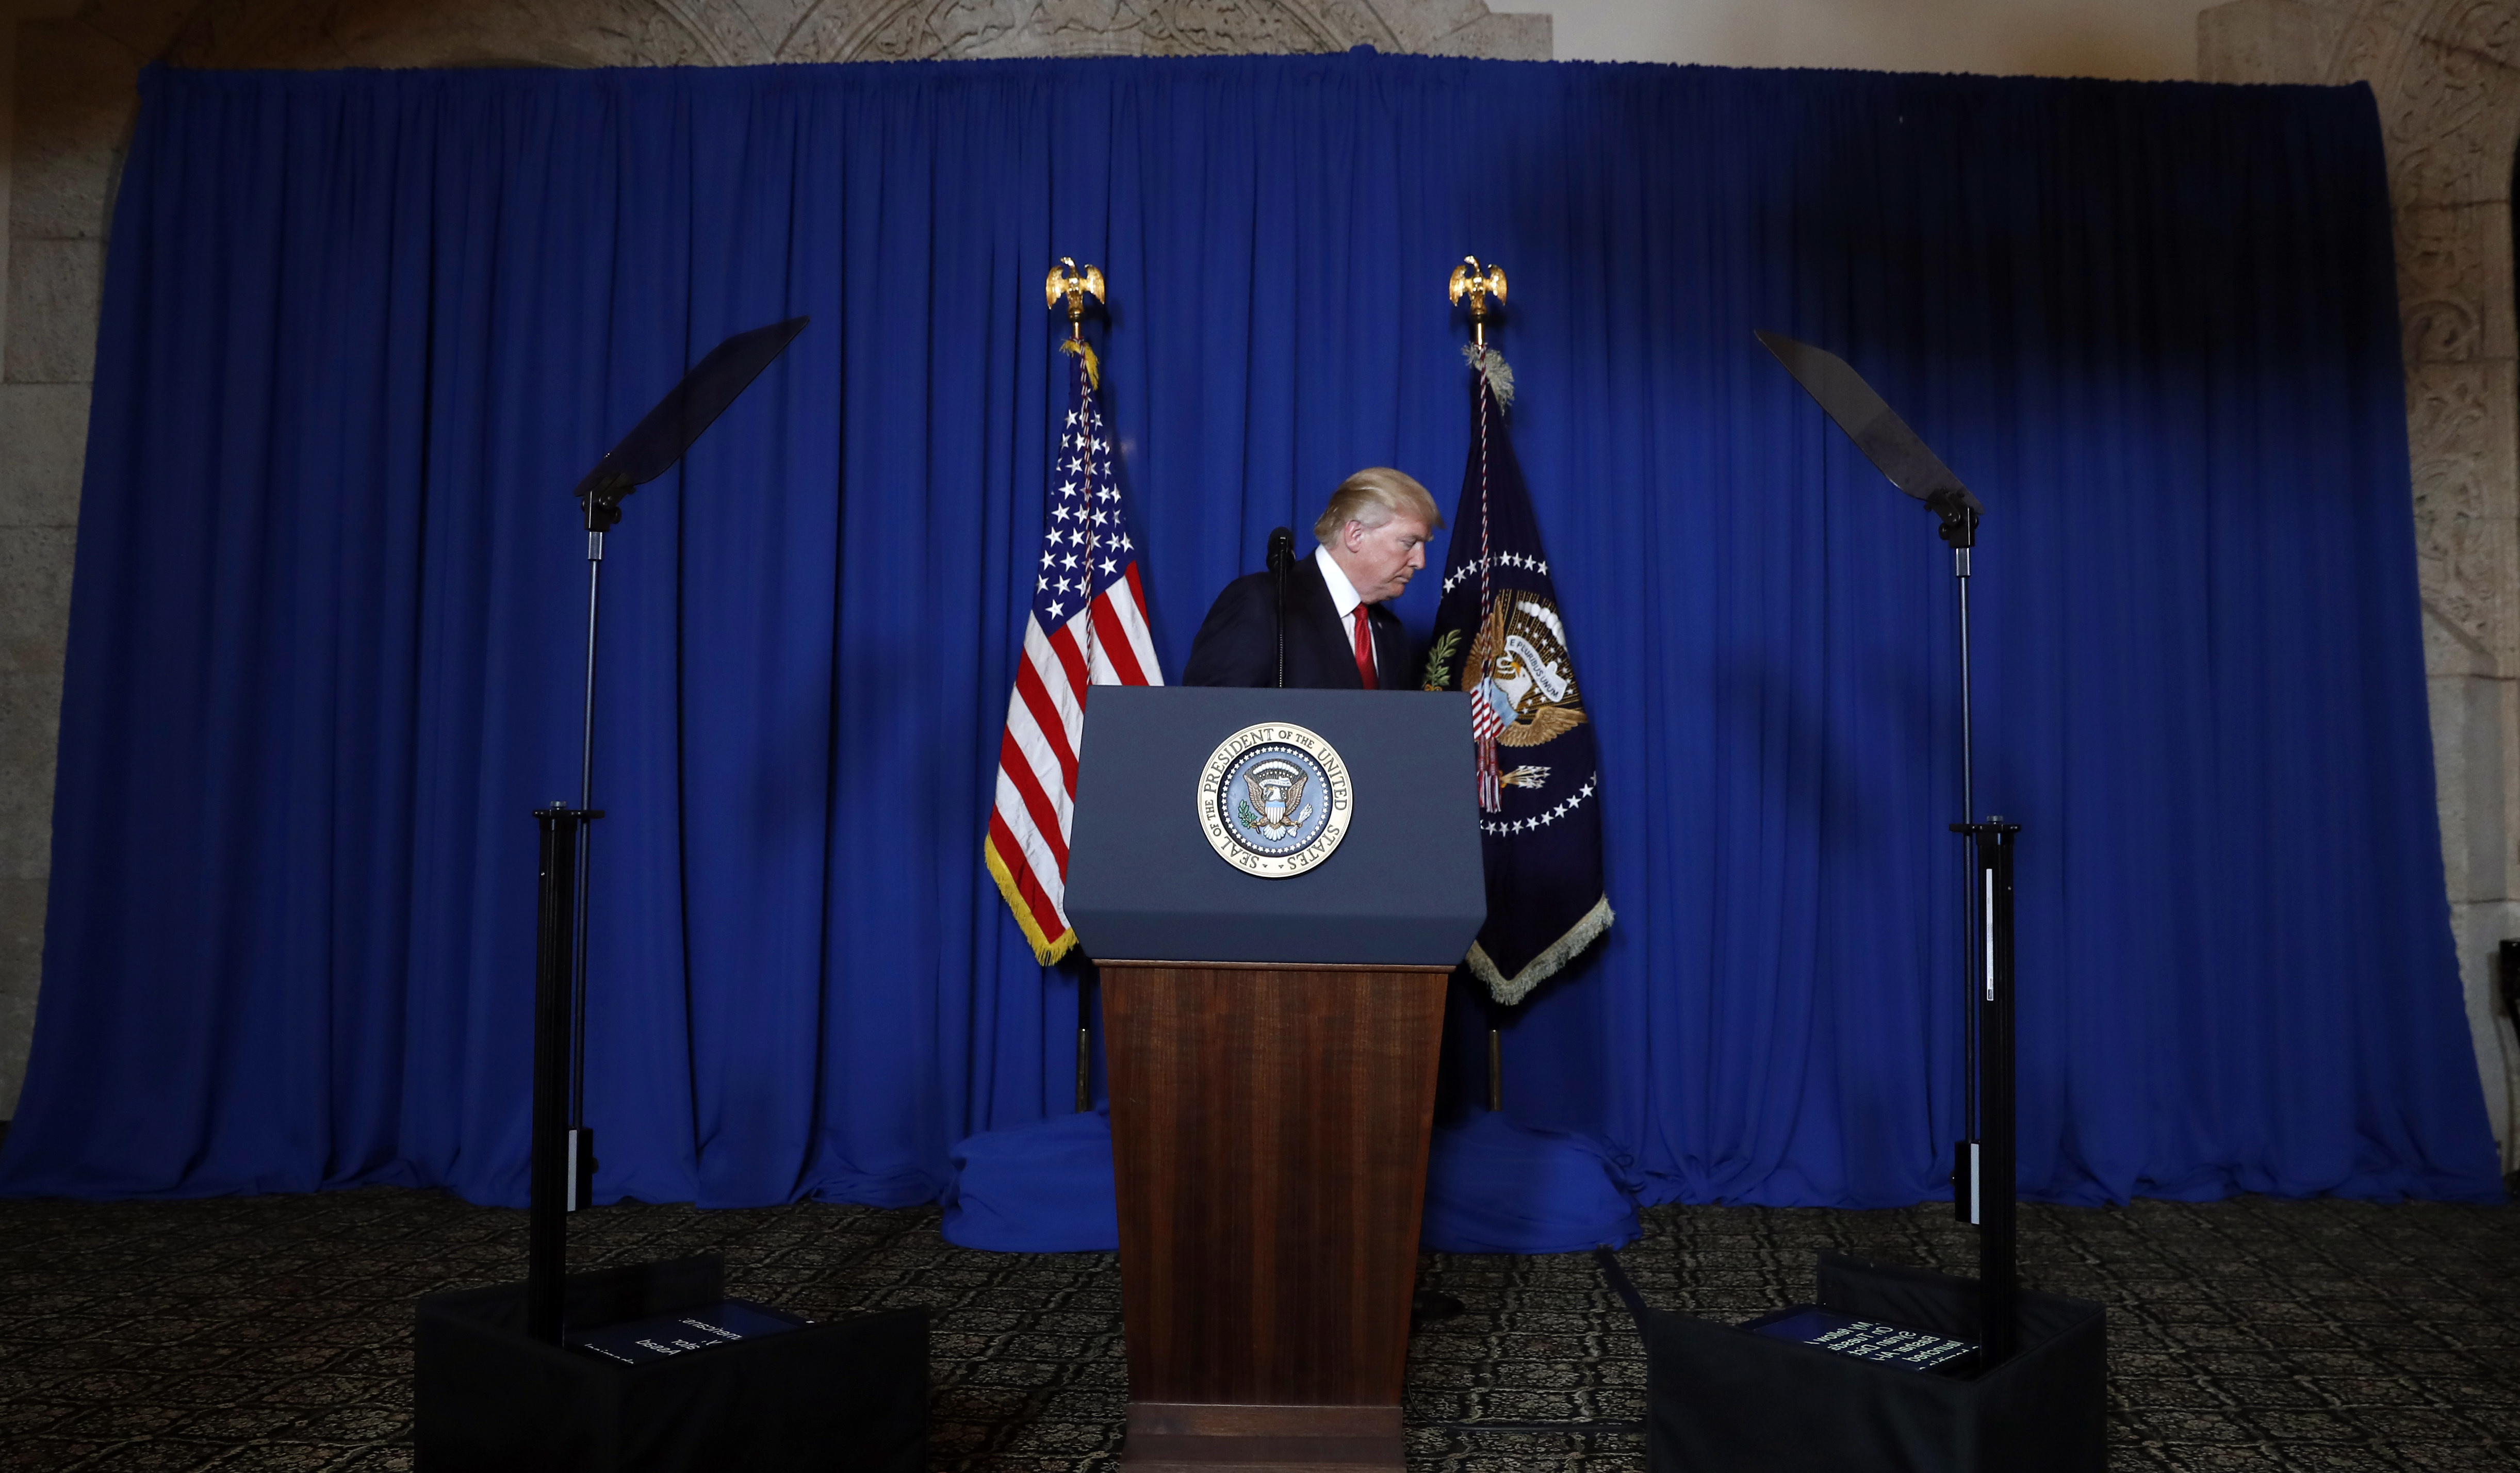 President Donald Trump leaves the podium after speaking at Mar-a-Lago in Palm Beach, Fla., Thursday, April 6, 2017, after the U.S. fired a barrage of cruise missiles into Syria Thursday night in retaliation for this week's gruesome chemical weapons attack against civilians.